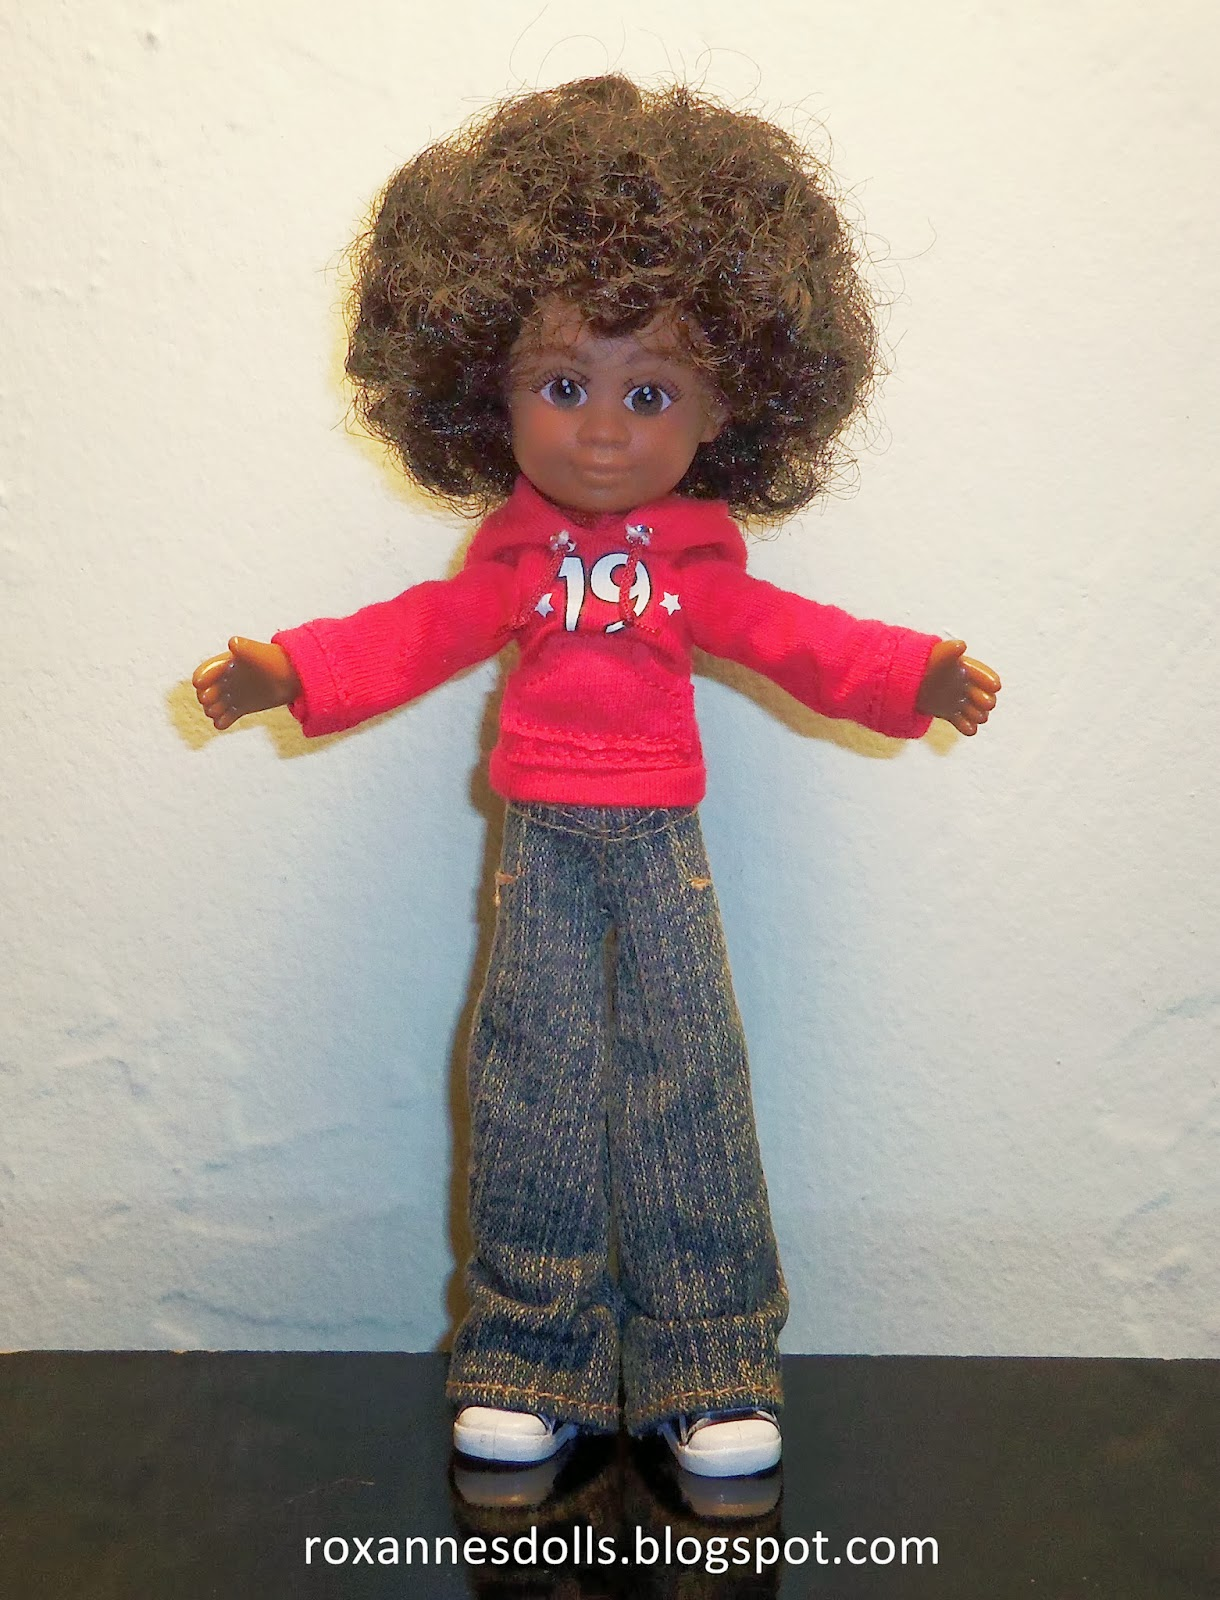 Roxanne's Dolls: How To Do A Boil Perm